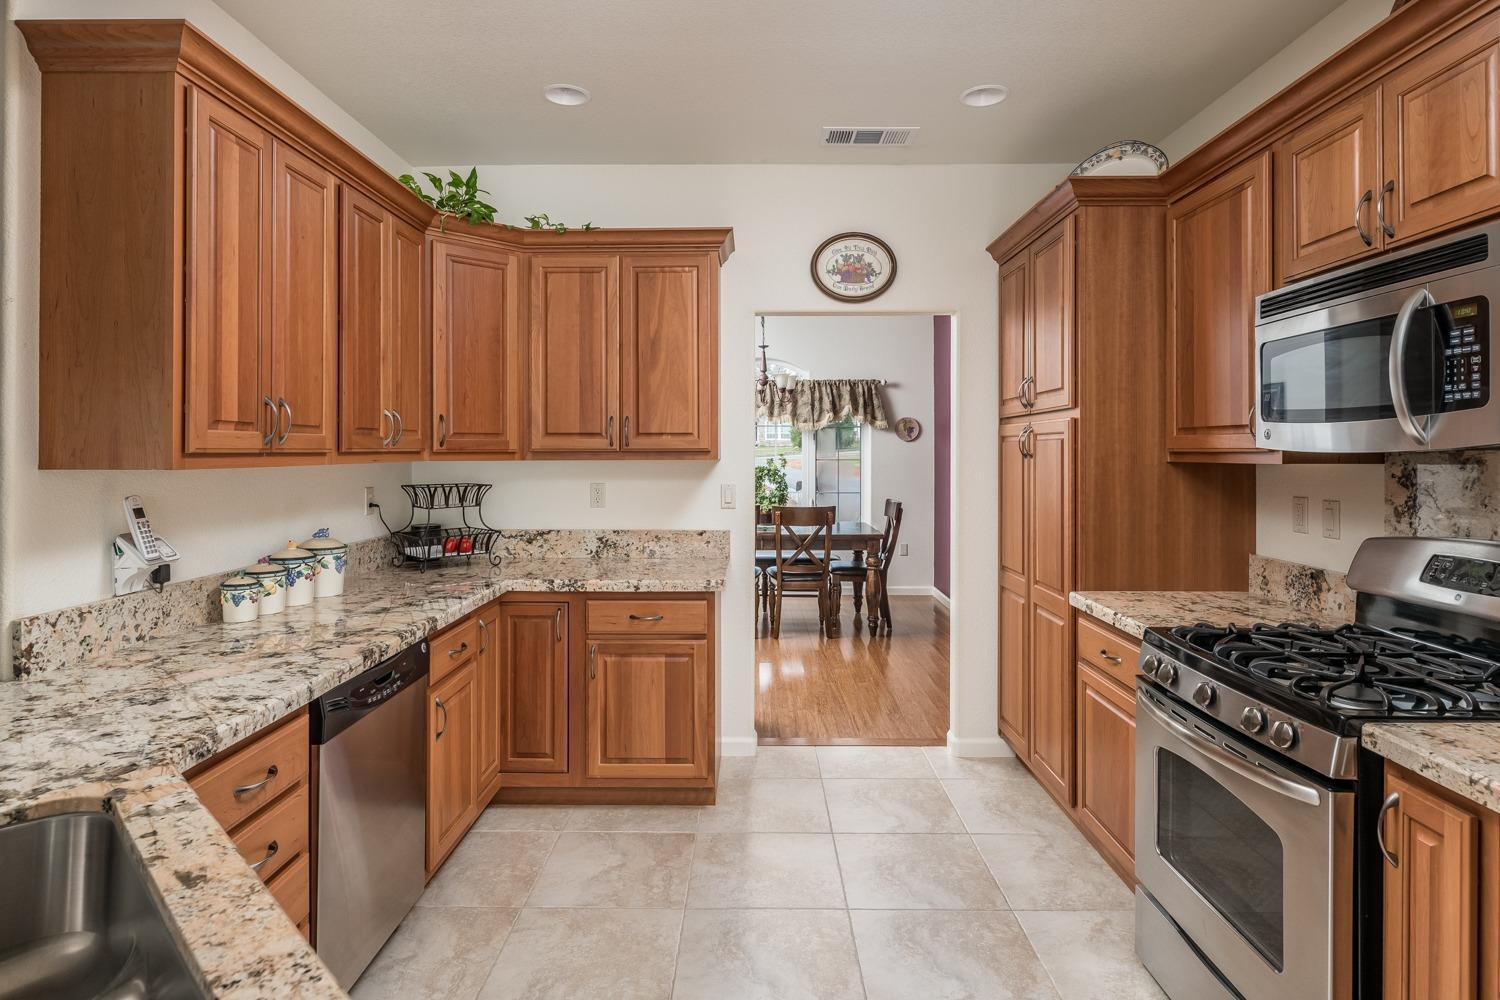 Light brown kitchen cabinets and granite counter